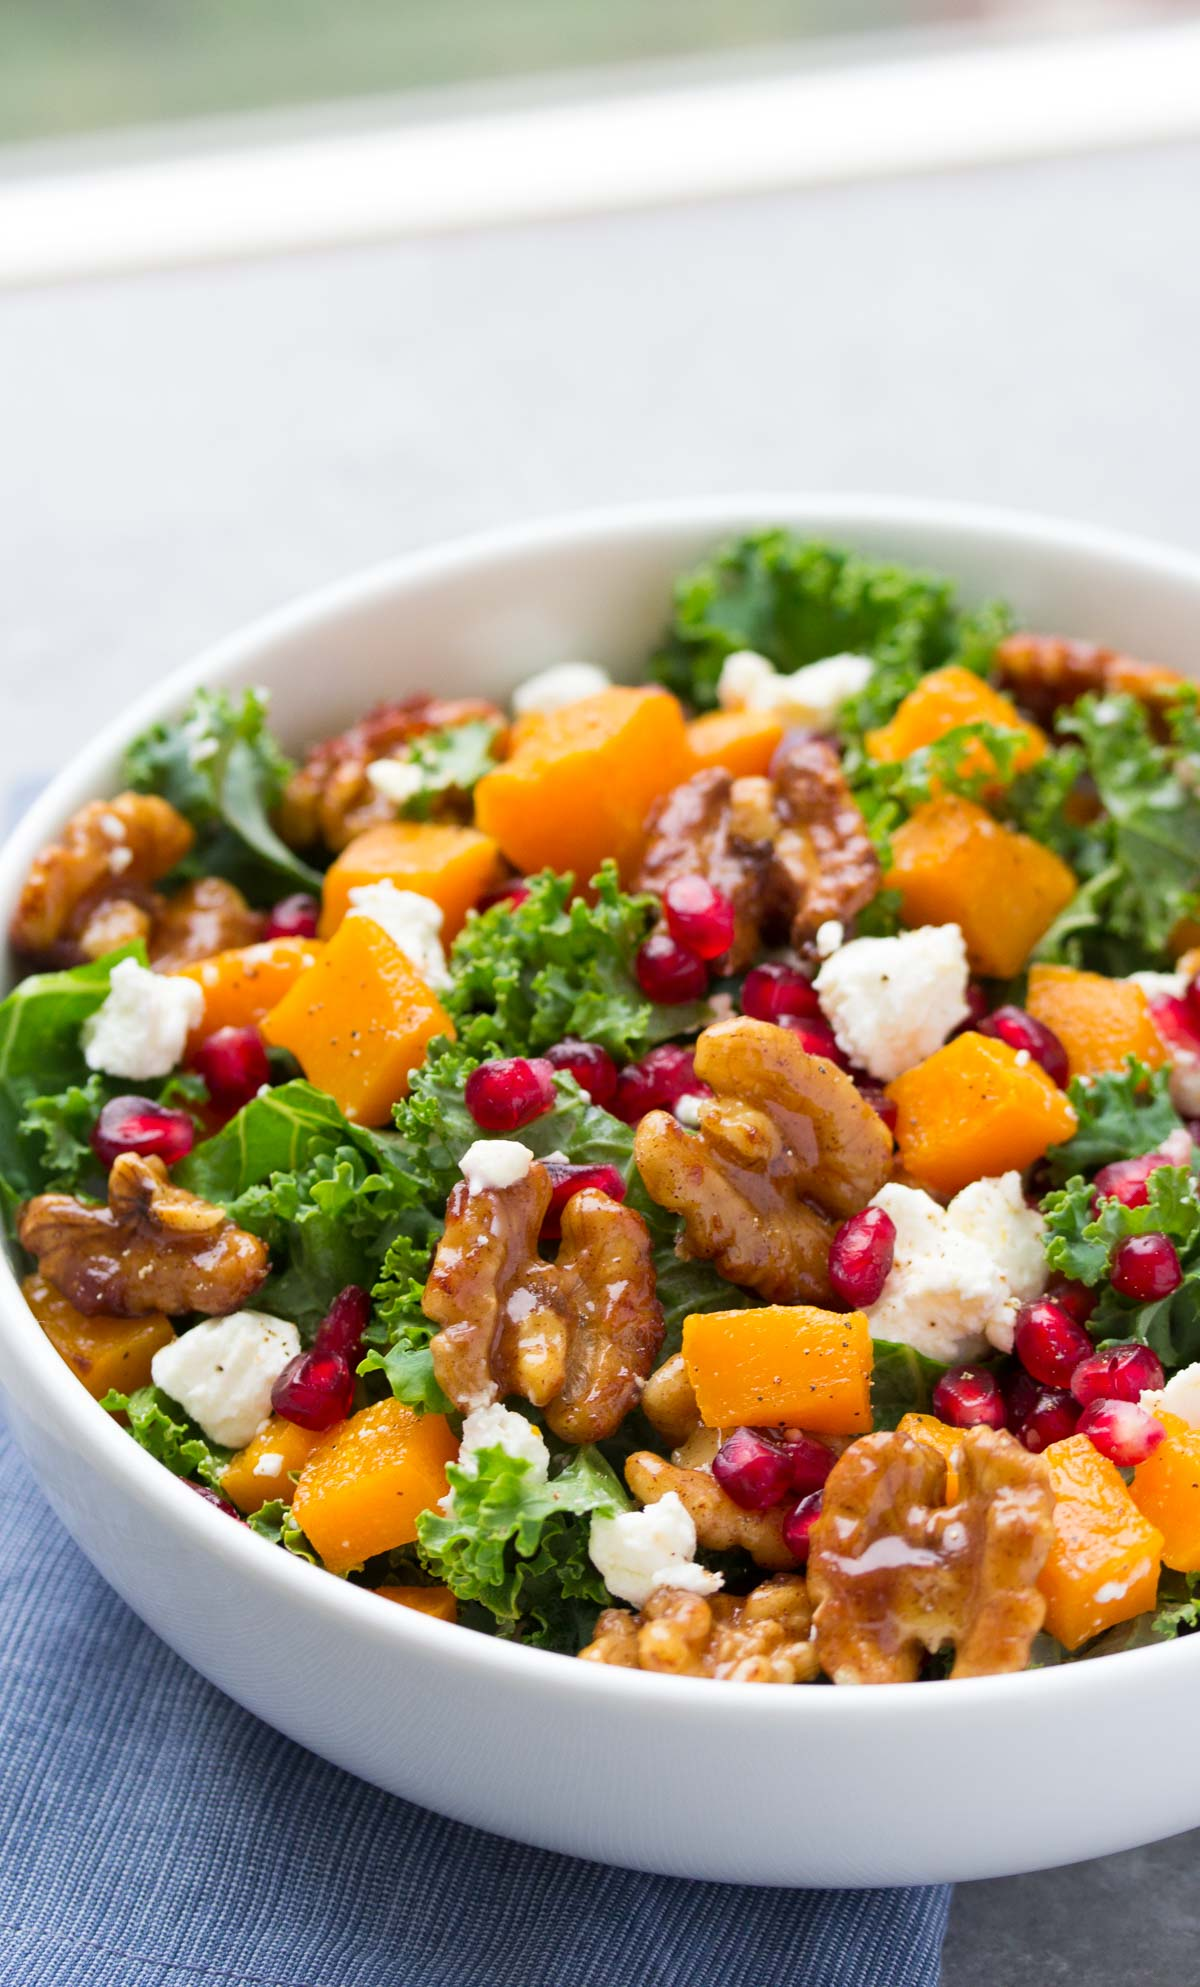 ... salad! Butternut squash and pomegranate kale salad with spiced